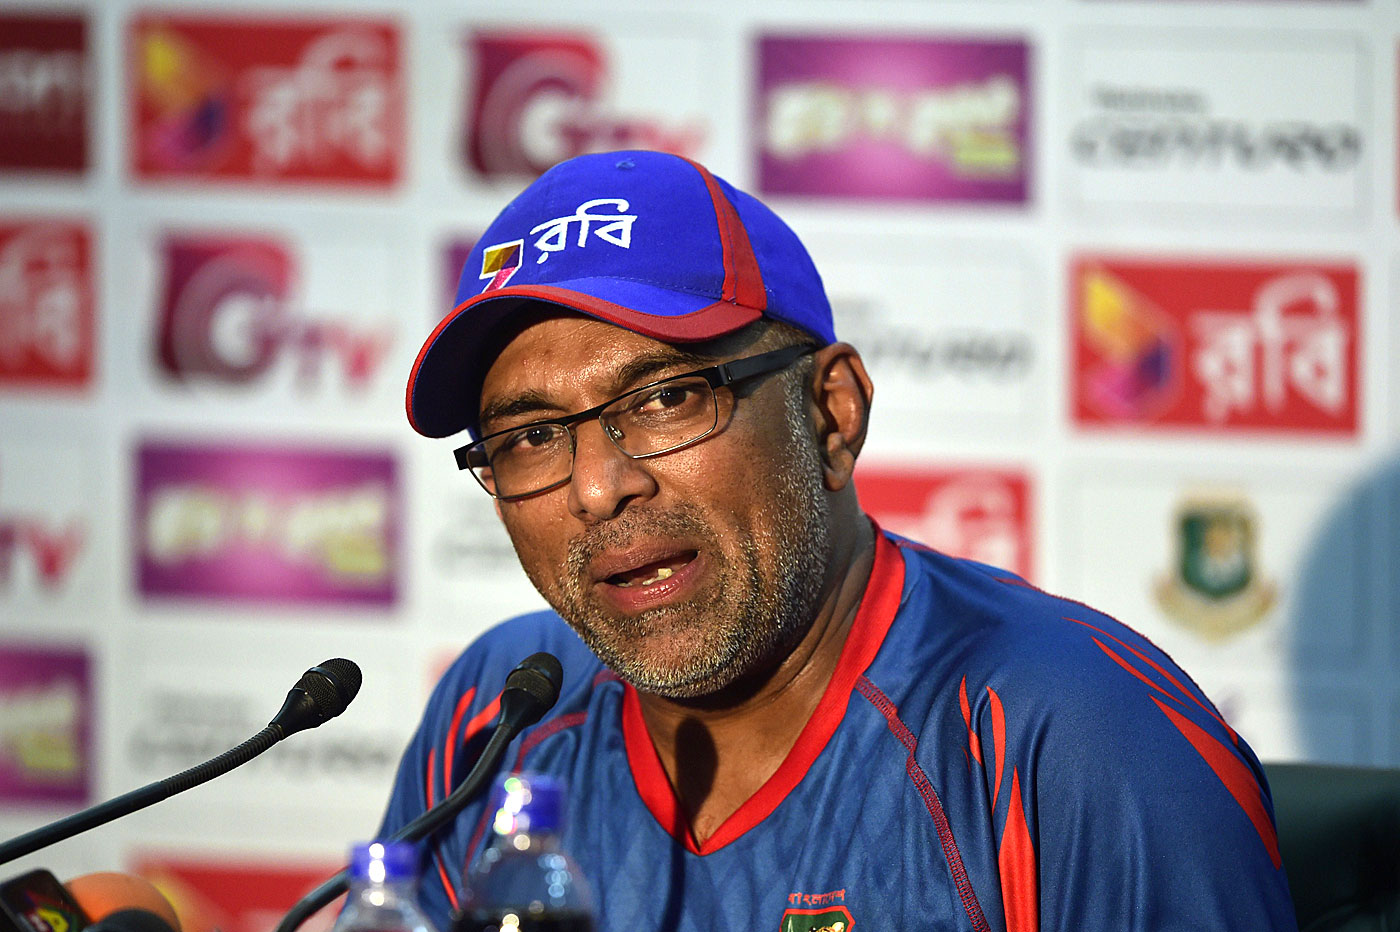 Chandika Hathurusingha knew Bangladesh had the potential to be better. He wanted the players to get over their fear of losing